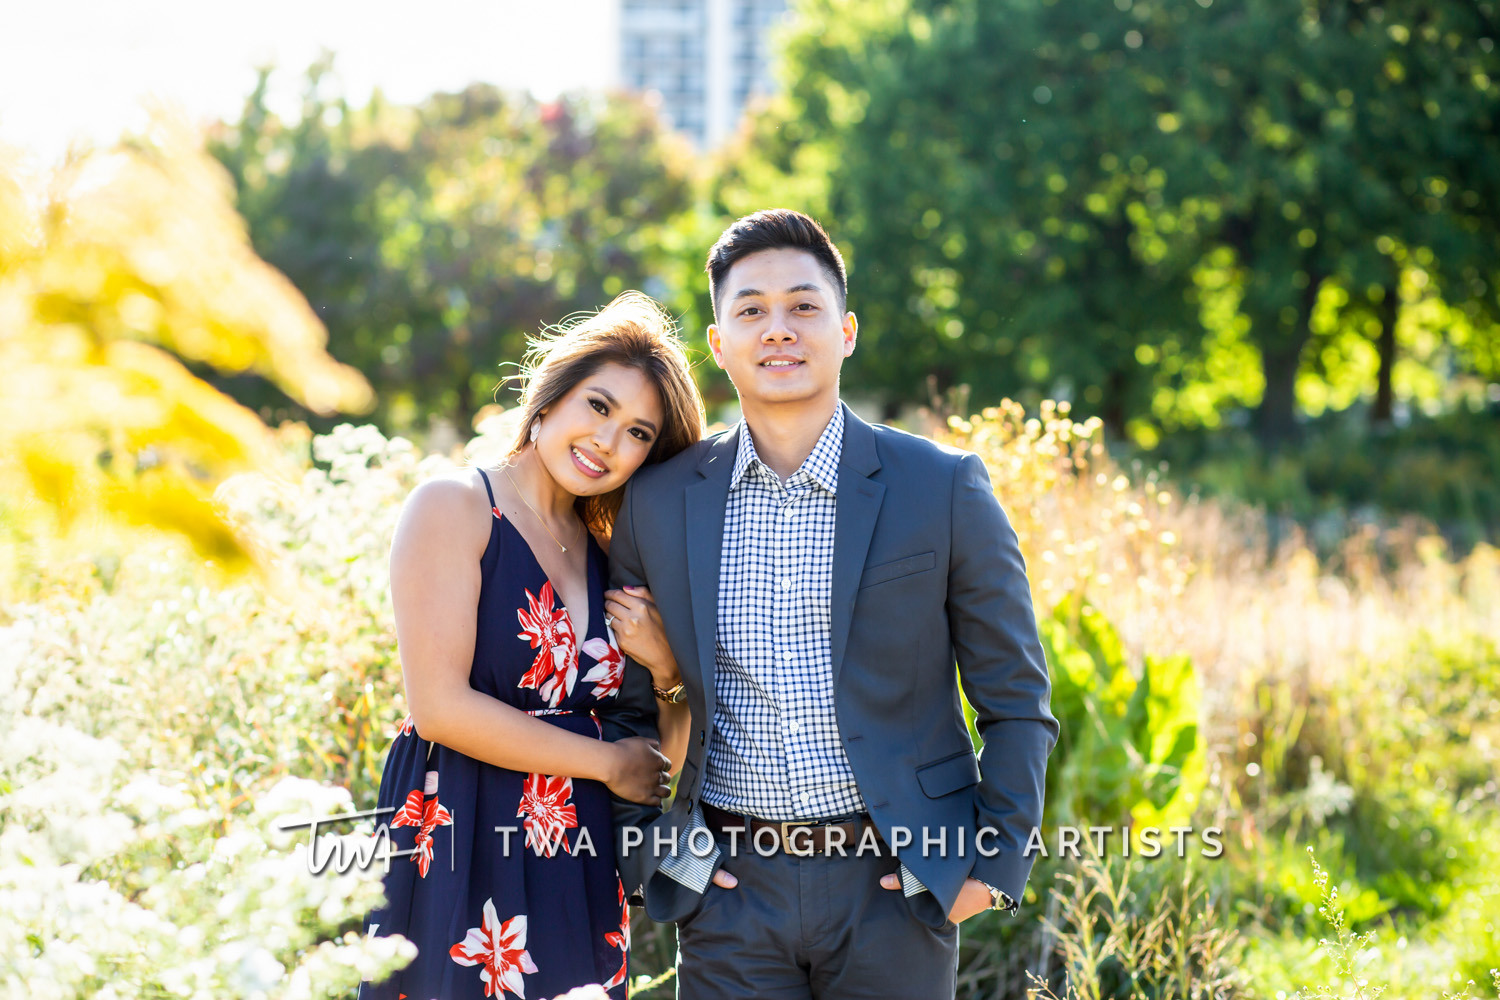 Chicago-Wedding-Photographer-TWA-Photographic-Artists-North-Ave-Beach_Butthajit_Dinh_MJ-023